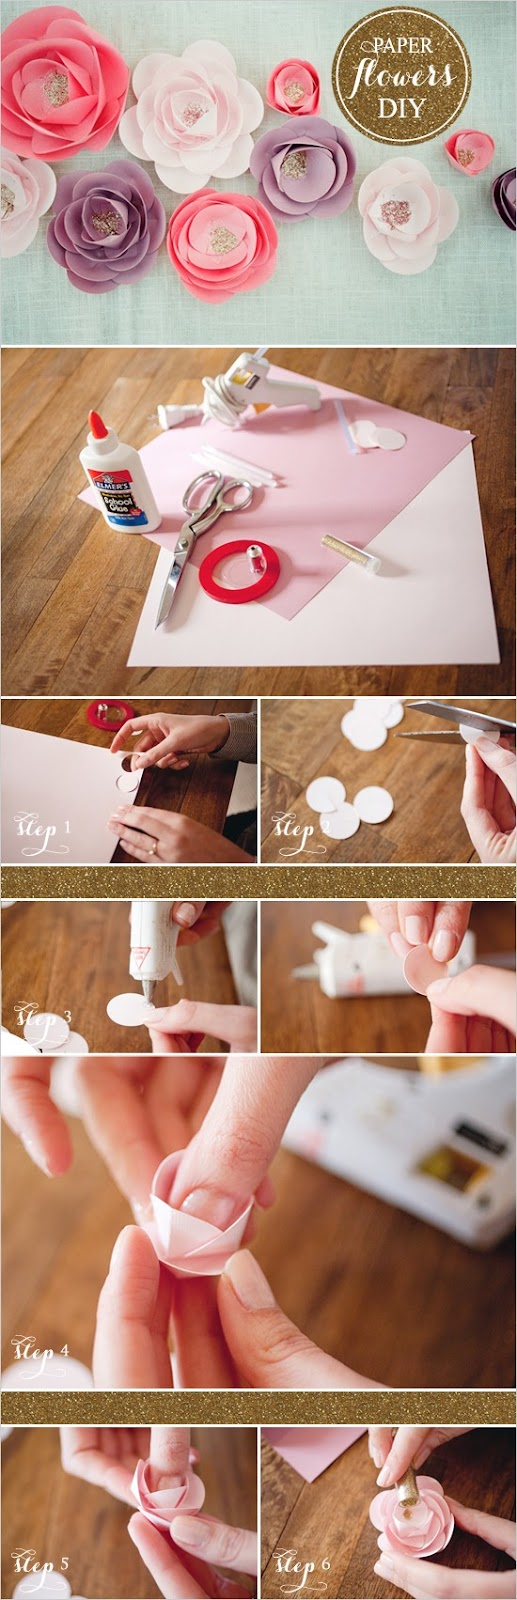 DIY glitter paper flower tutorials - Flower Tutorials Directory - Click through to view 30 Fabulous Flower Tutorials!